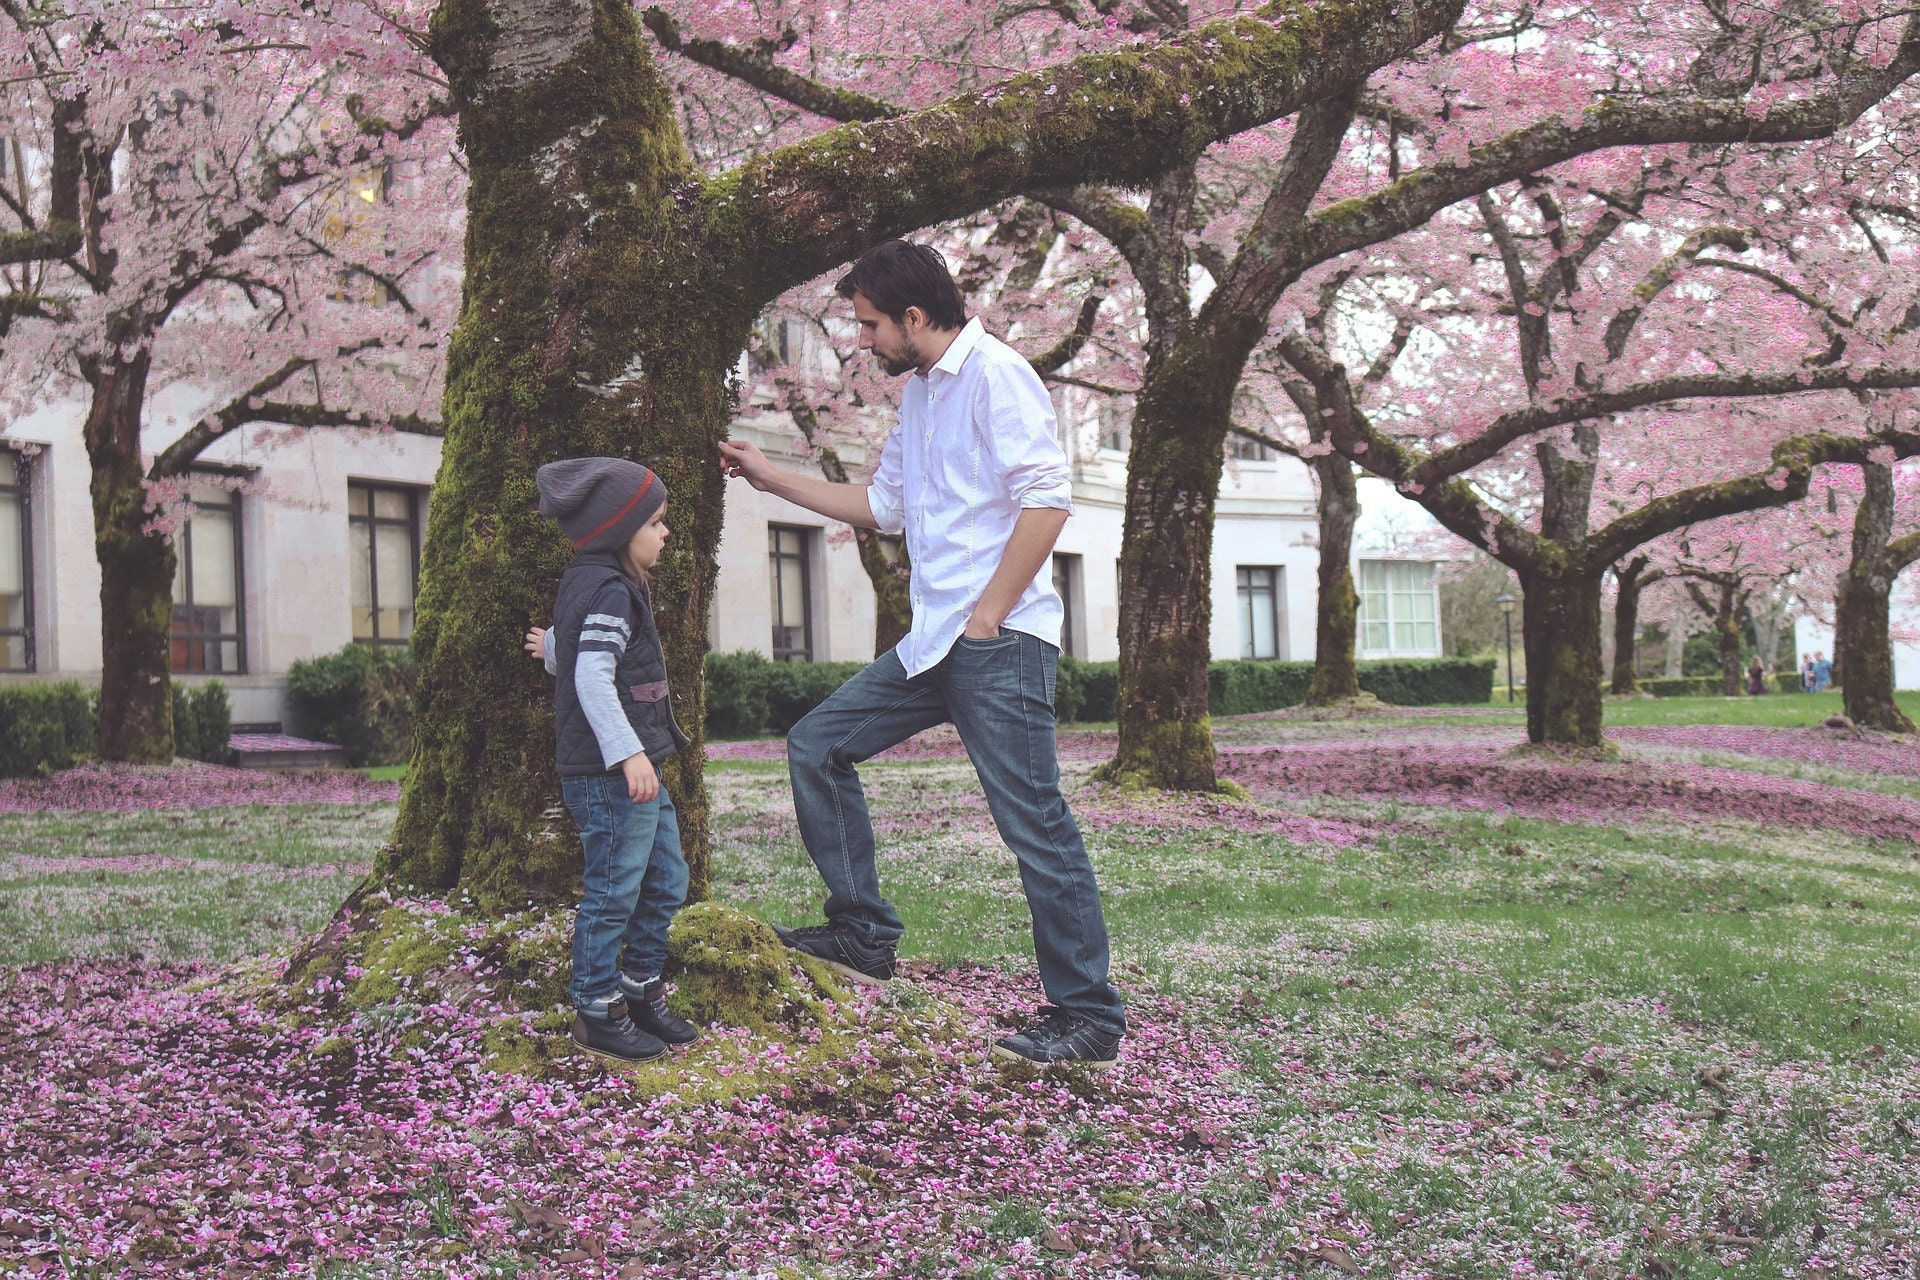 Dad, child, leaves, spring, grass, learning, experience, sensory, colors